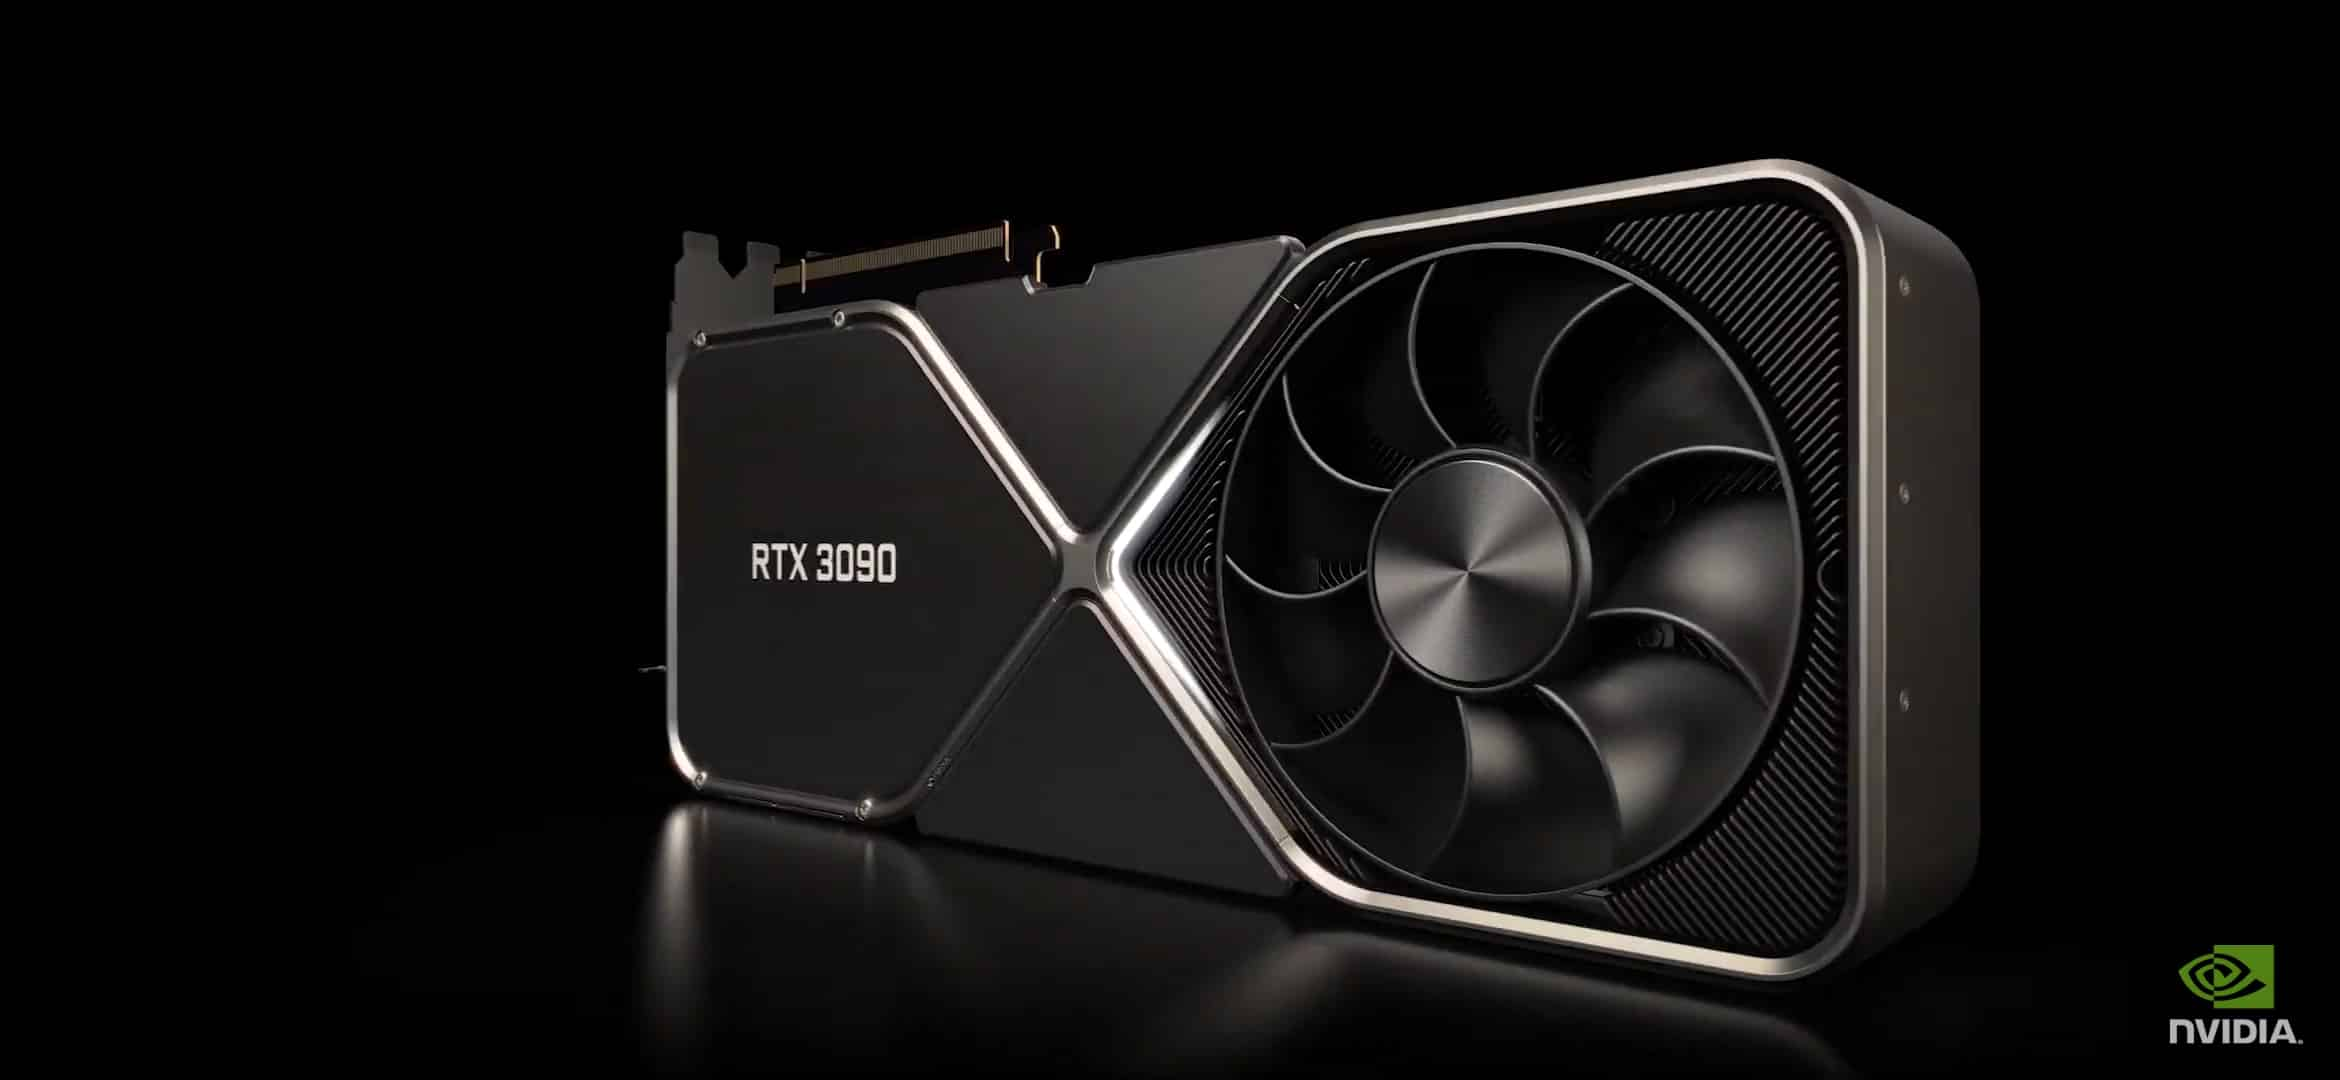 NVIDIA RTX 30-series shortage in supplies is primarily due to Samsung's  unsatisfactory 8nm yield - TechnoSports